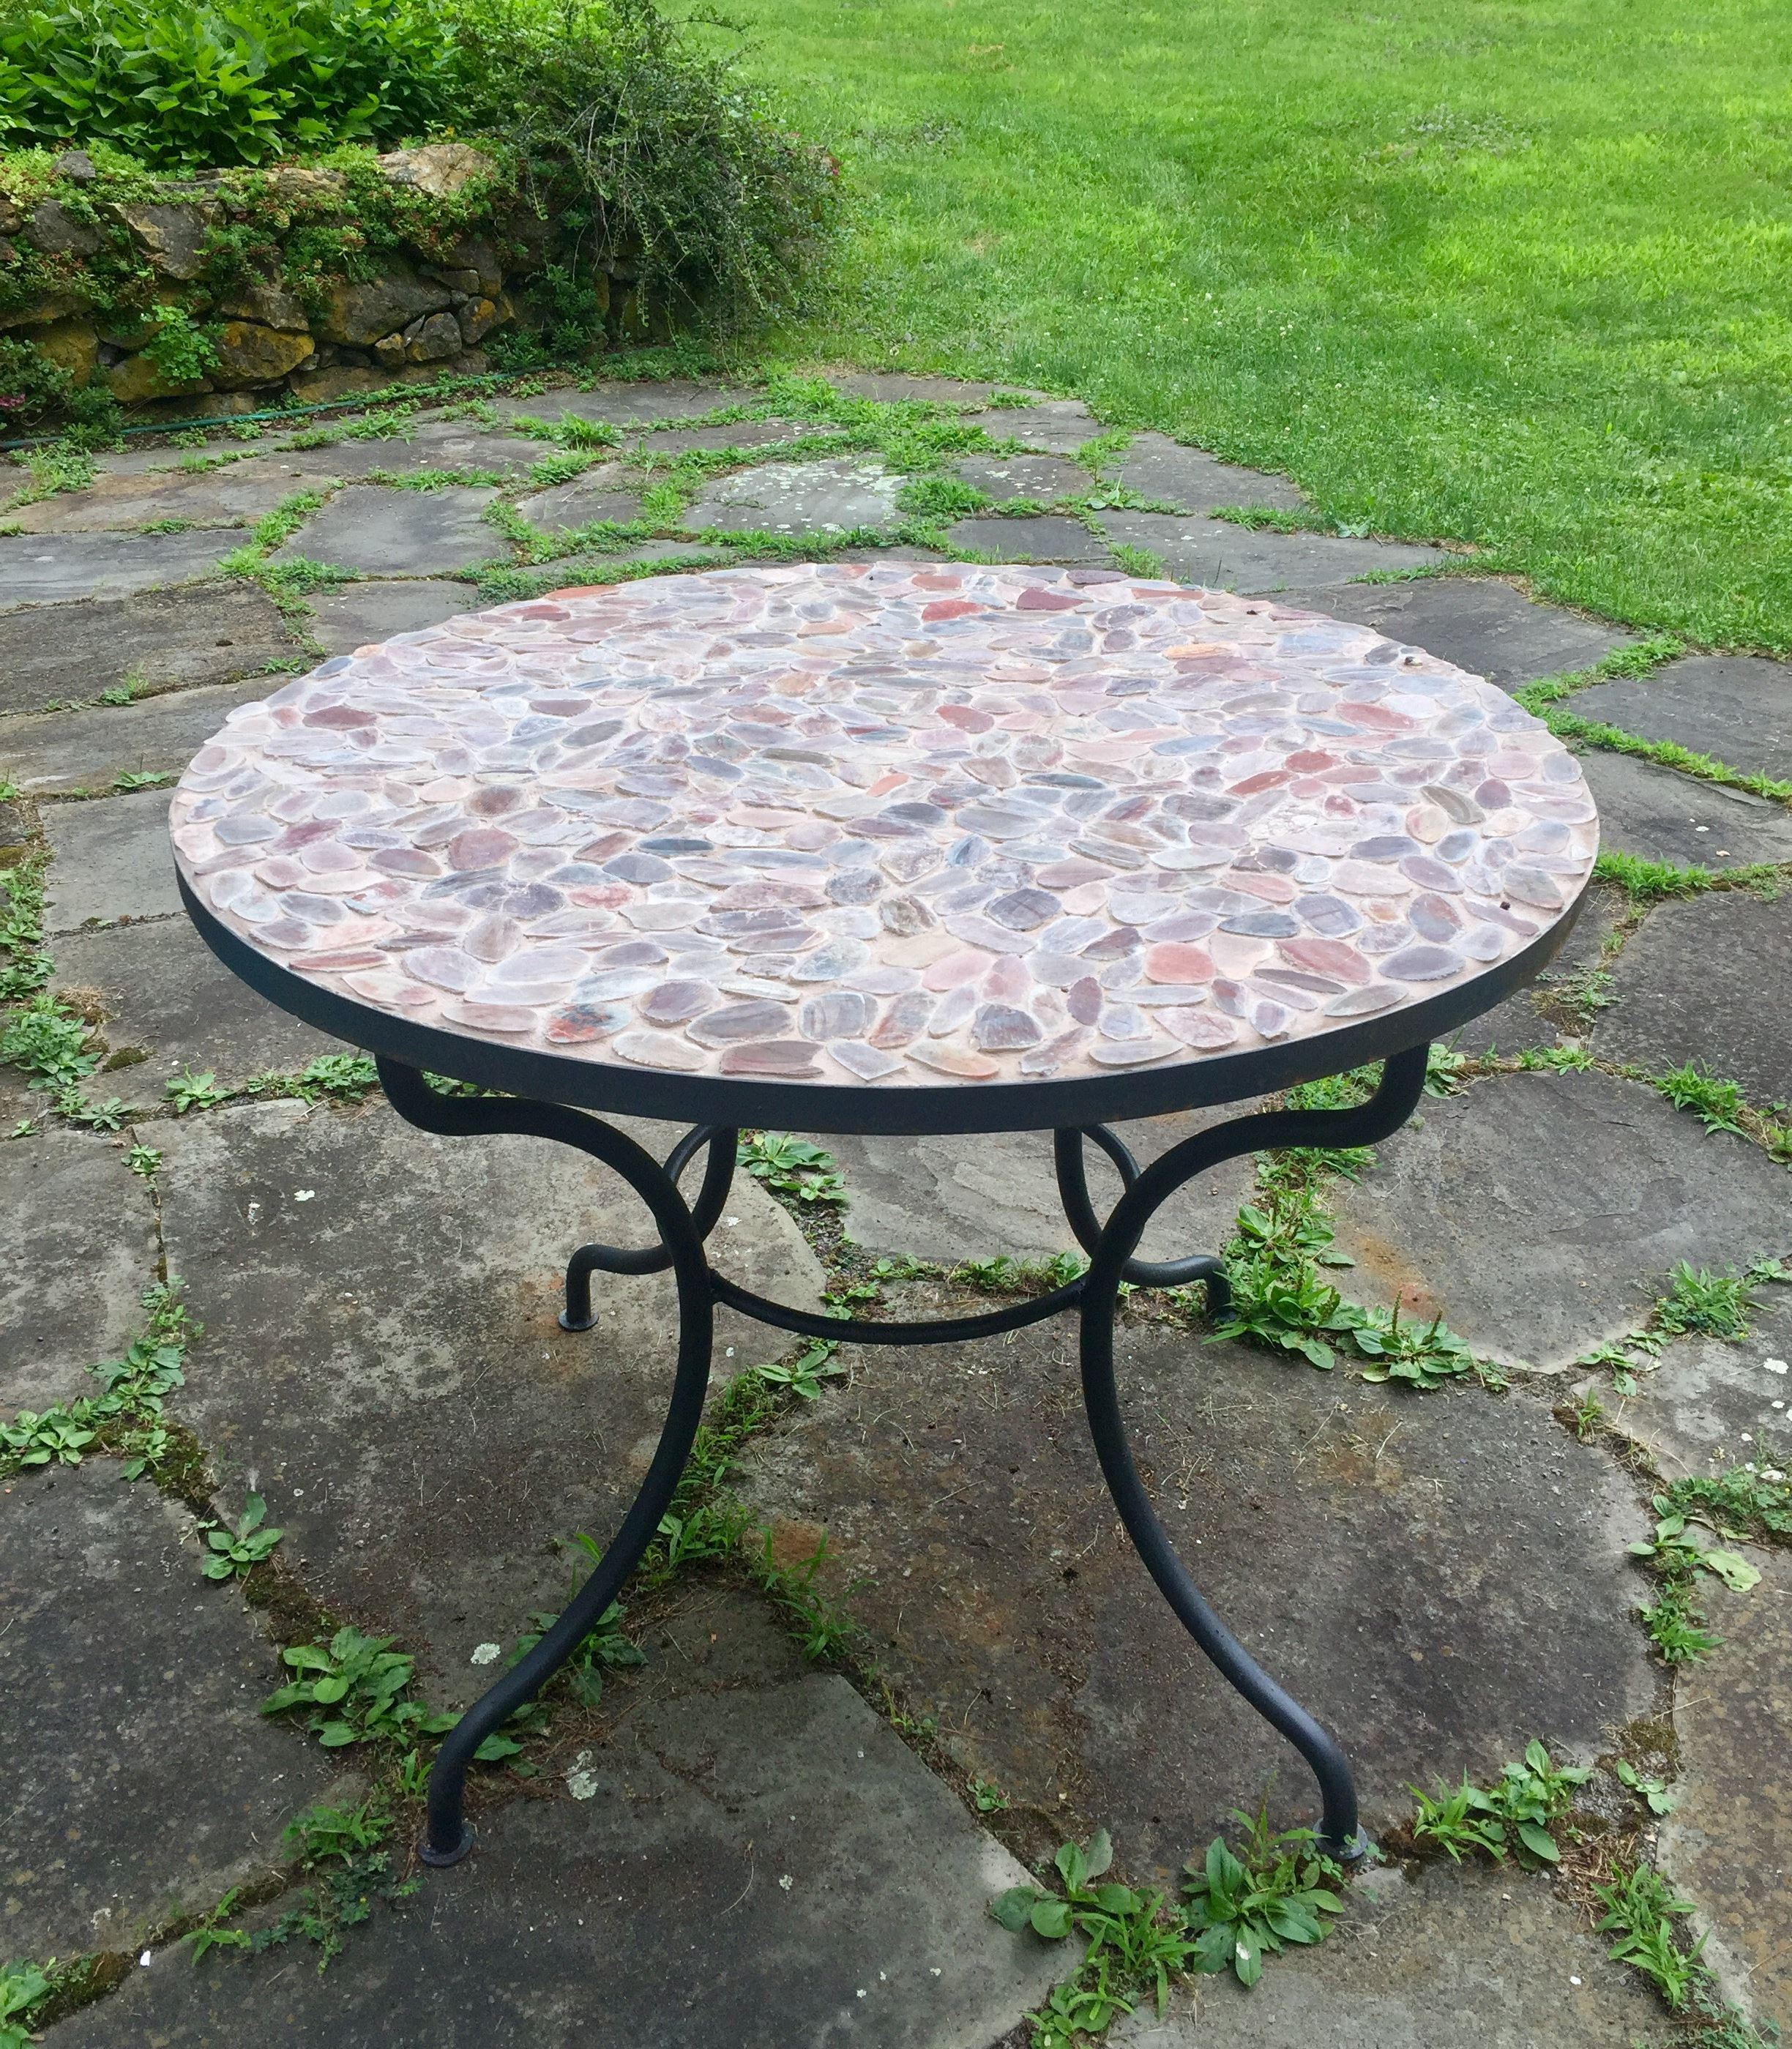 patio table mosaic end outdoor unique coffee marvelous tempered glass dining side replacement tiles for tile accent full size grill chef small couches spaces dresser drawer pulls